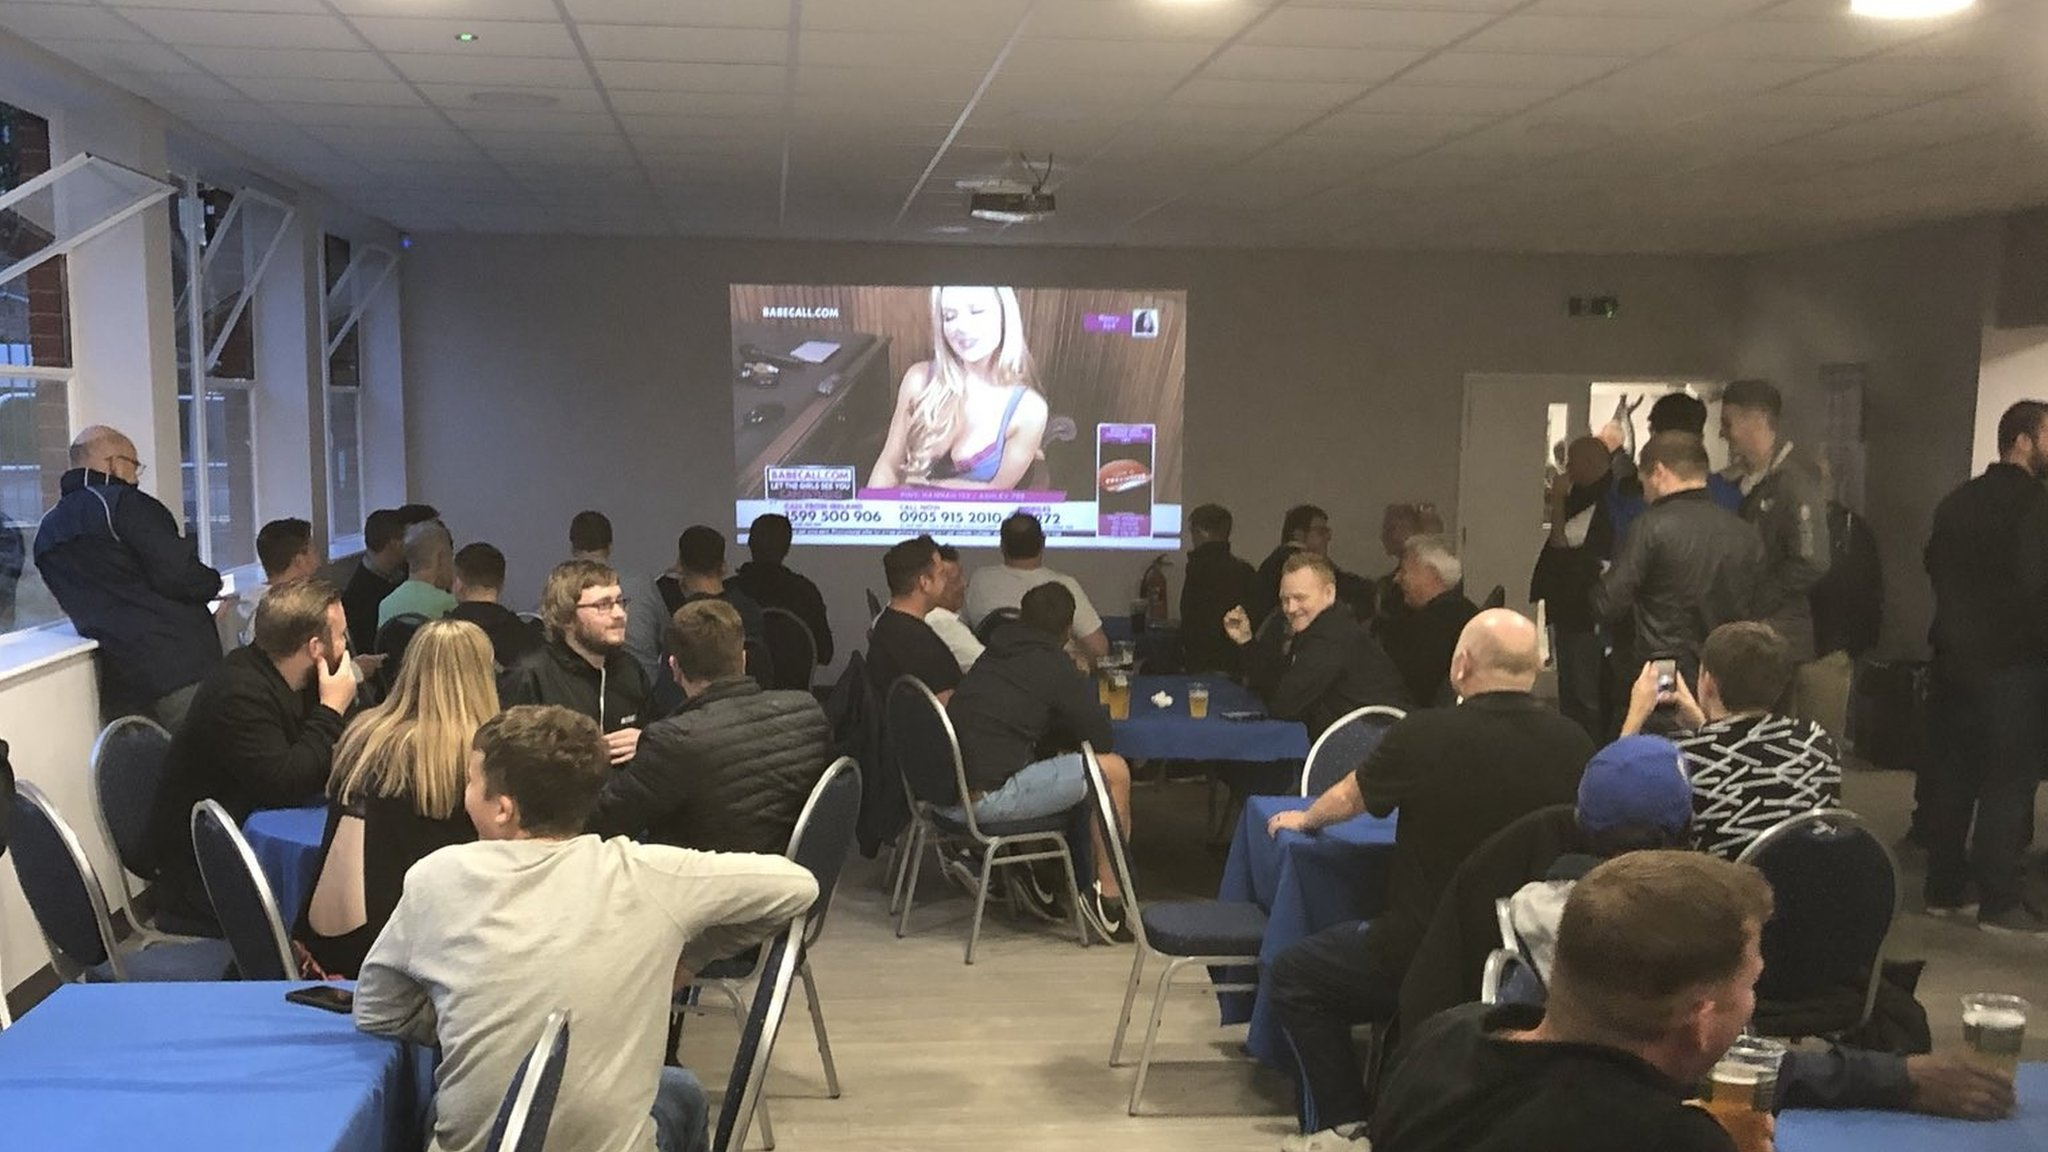 Babestation surprise for Bristol Rovers fans